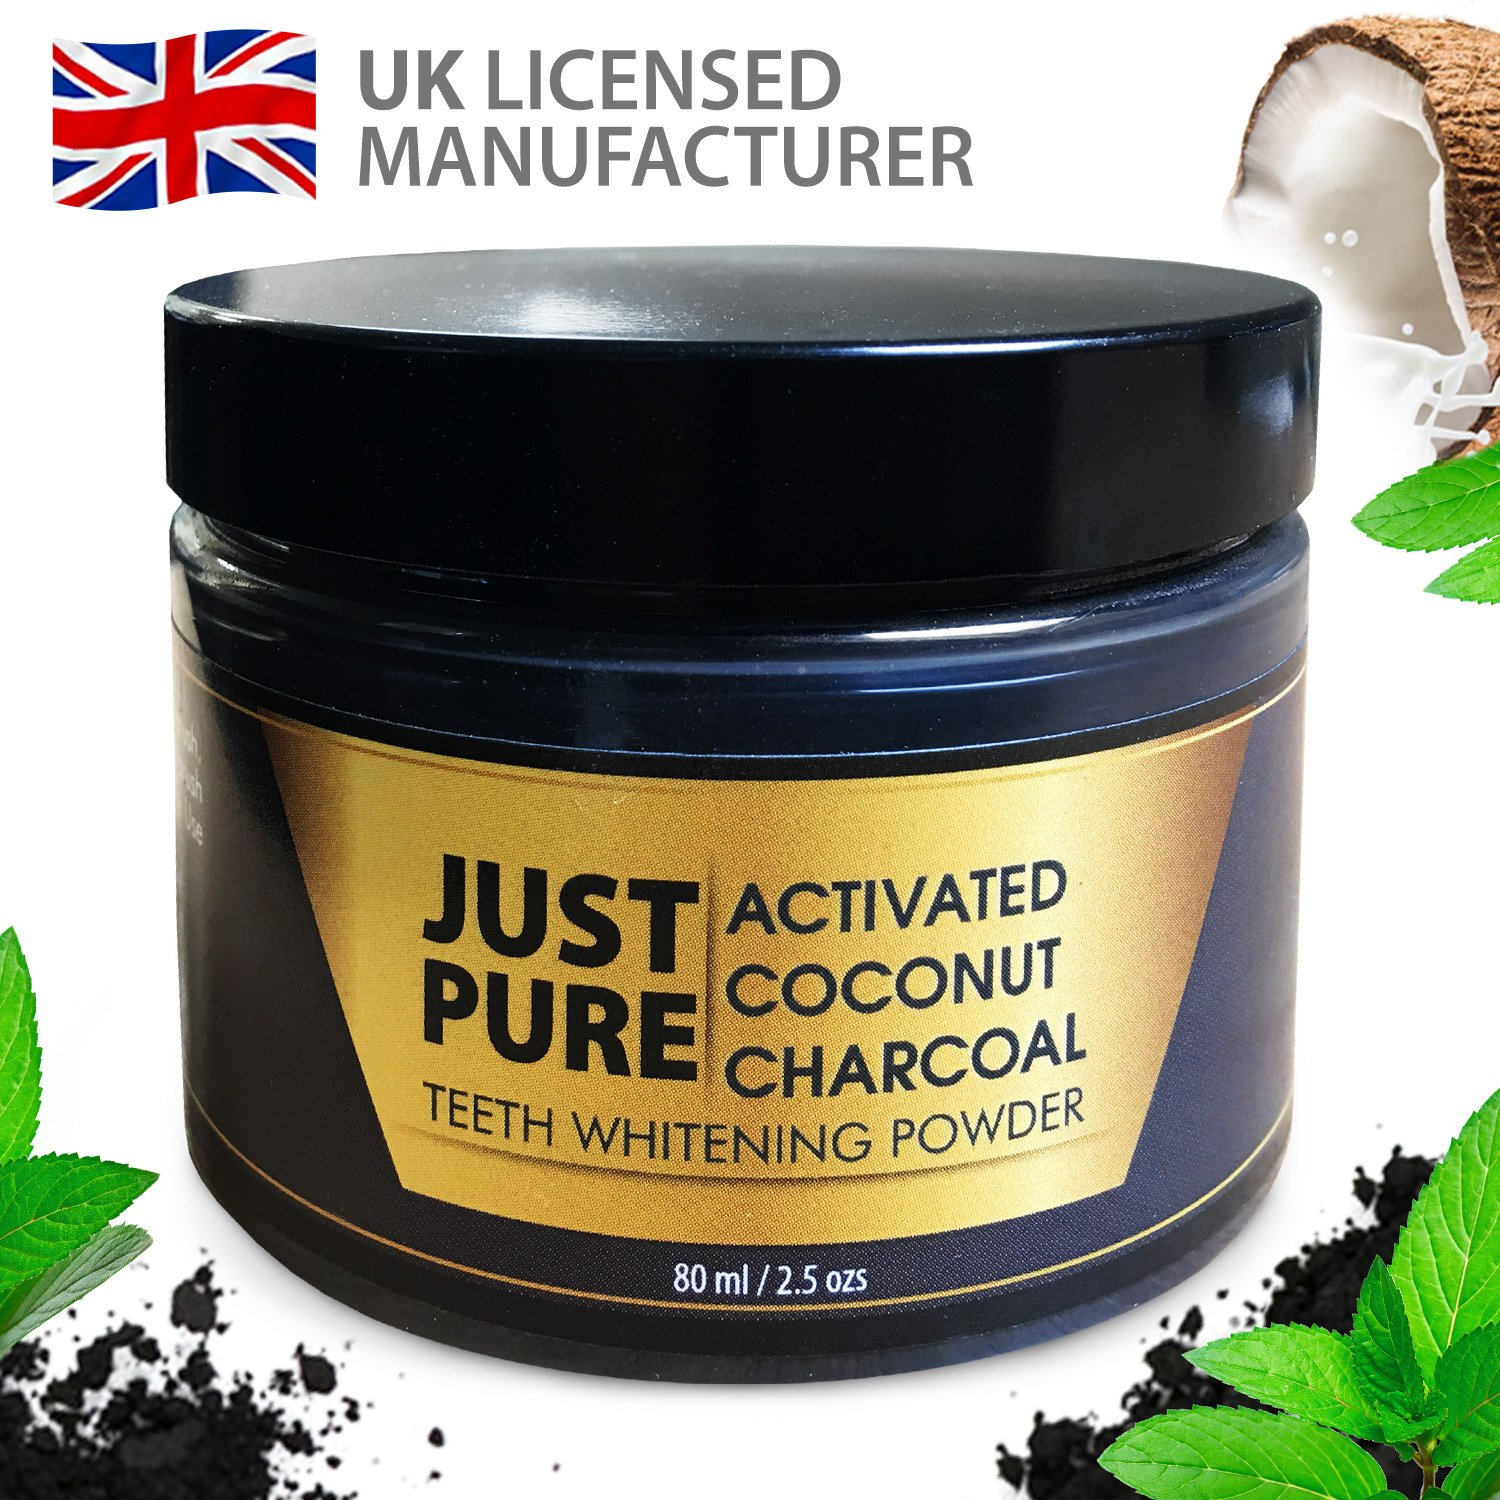 Activated Charcoal Powder - Teeth Whitener Made in The UK - Activated Charcoal Teeth Whitening for Whiter, Brighter Teeth Quickly - Teeth Whitening Kit 80ml product image